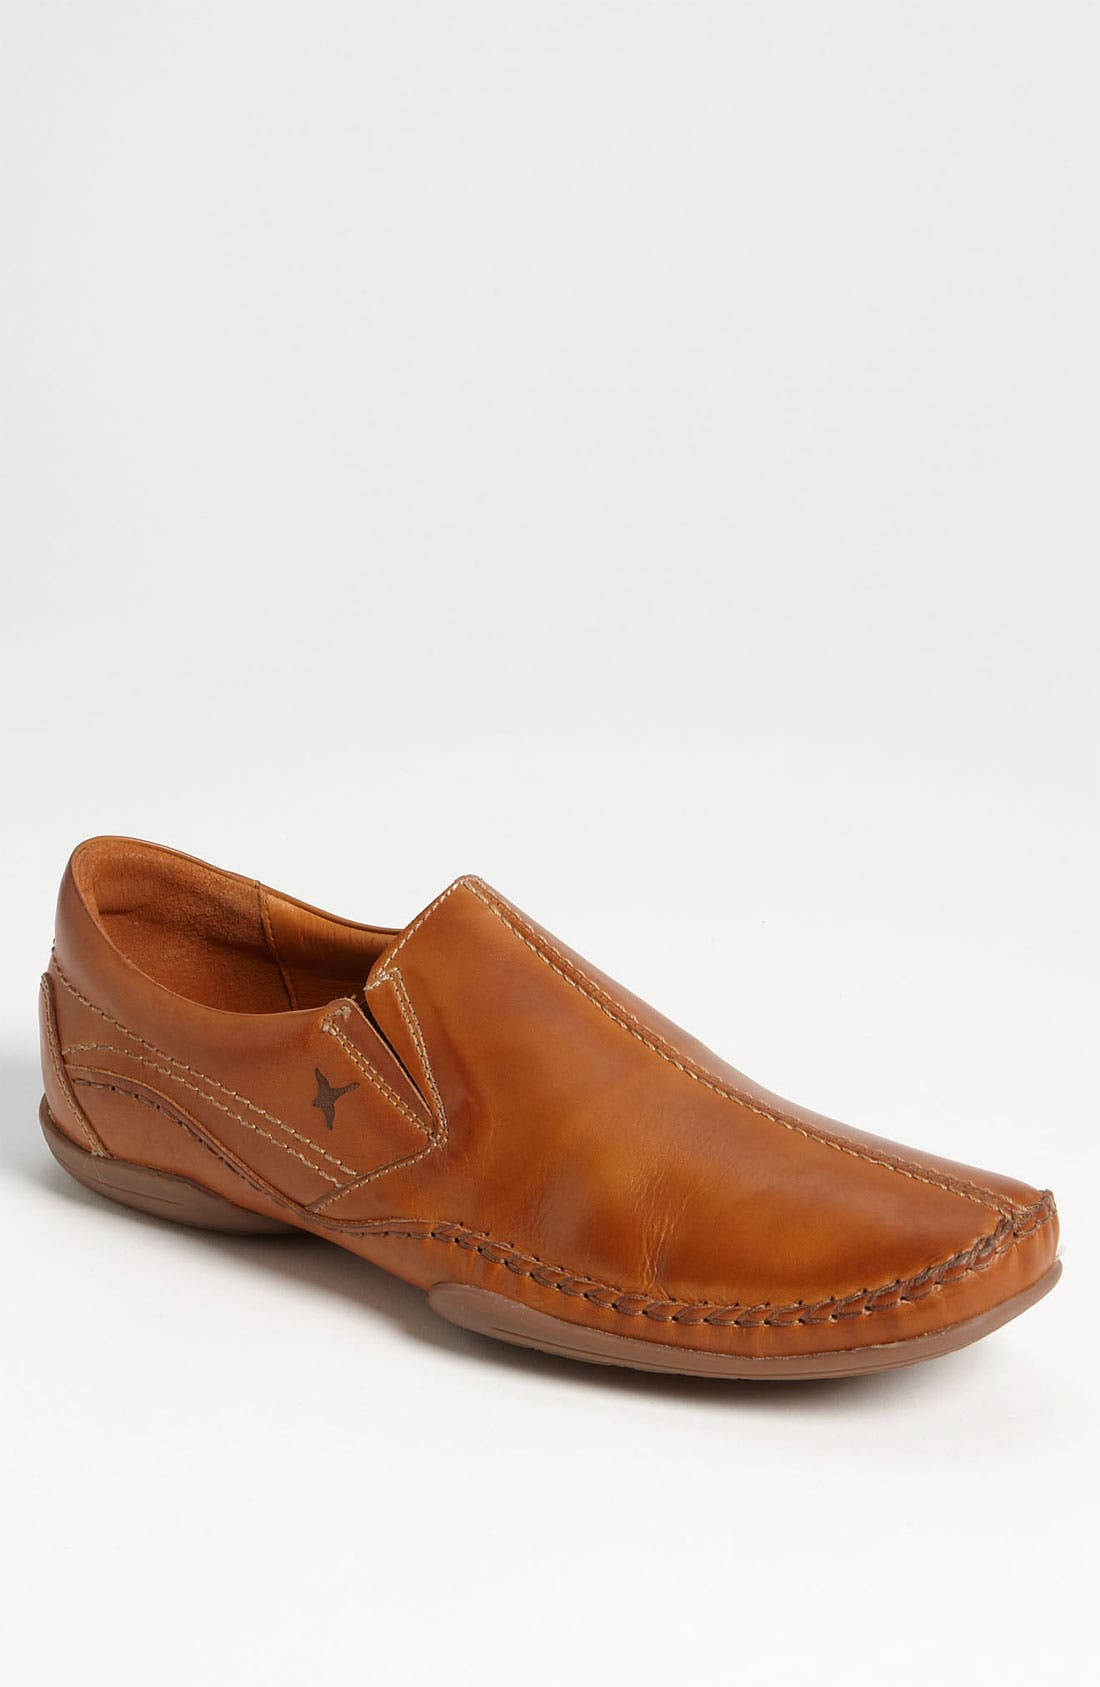 Alternate Image 1 Selected - PIKOLINOS 'Puerto Rico' Loafer (Men)